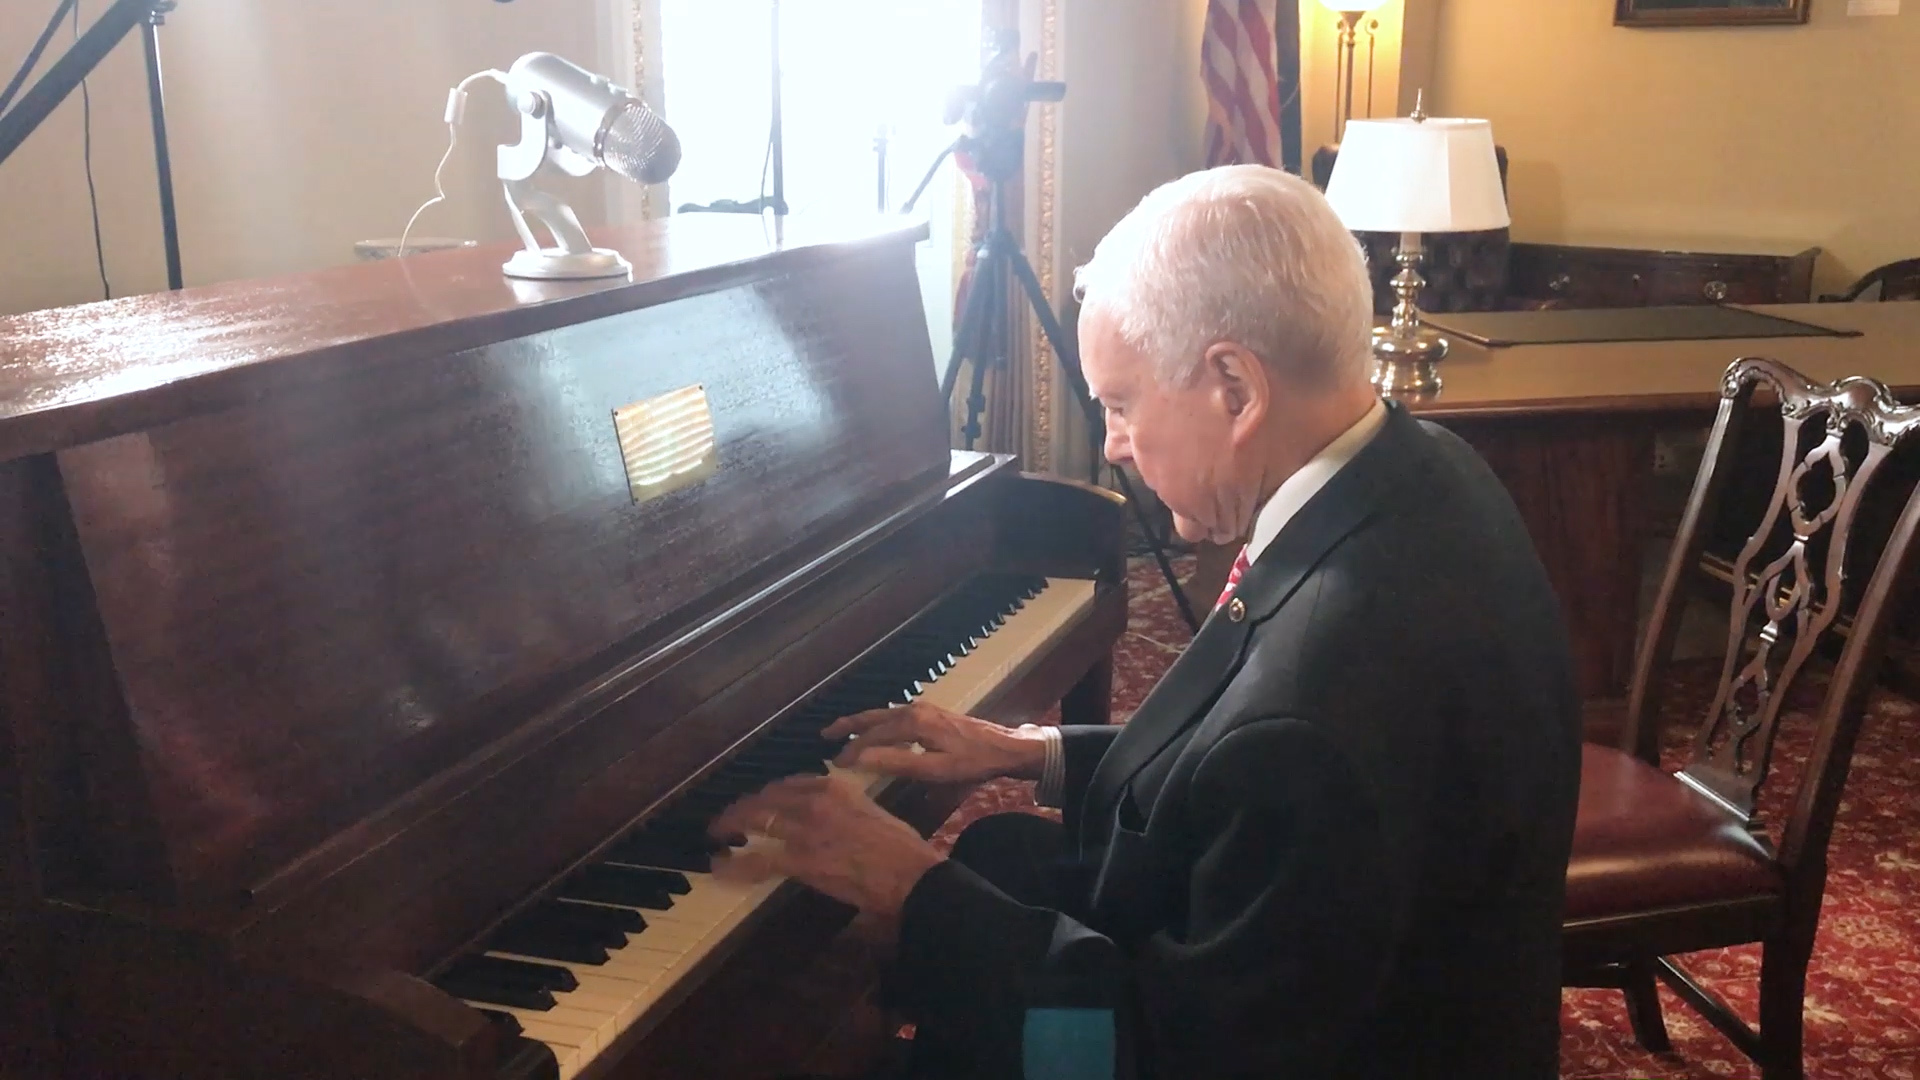 Hatch and Alexander Play Piano, Discuss Songwriting Legislation